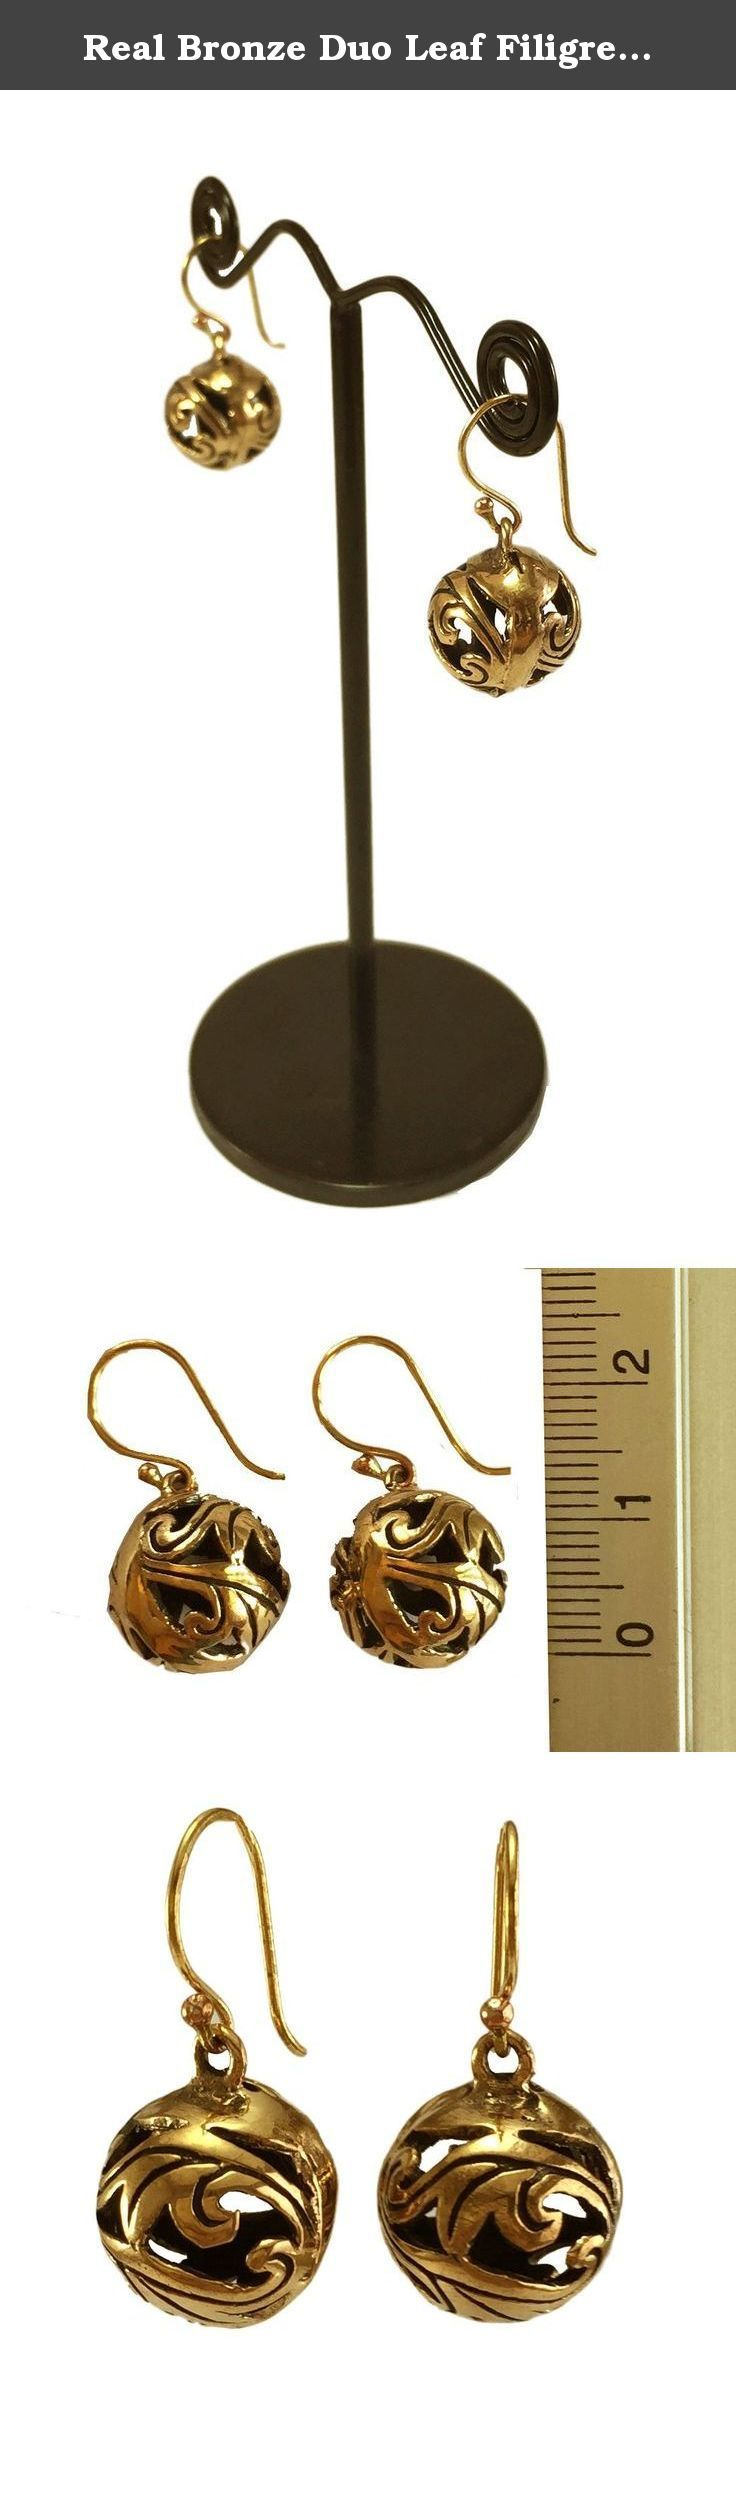 Real Bronze Duo Leaf Filigree Ball Drop Dangle Earrings Fish Hook Bronze Jewelry Gifts. -Good quality Bronze. -100% Satisfaction Guarantee. -Delivery Lead times: 14-21 days -Actual color may be vary from the pictures due to lighting or monitor.